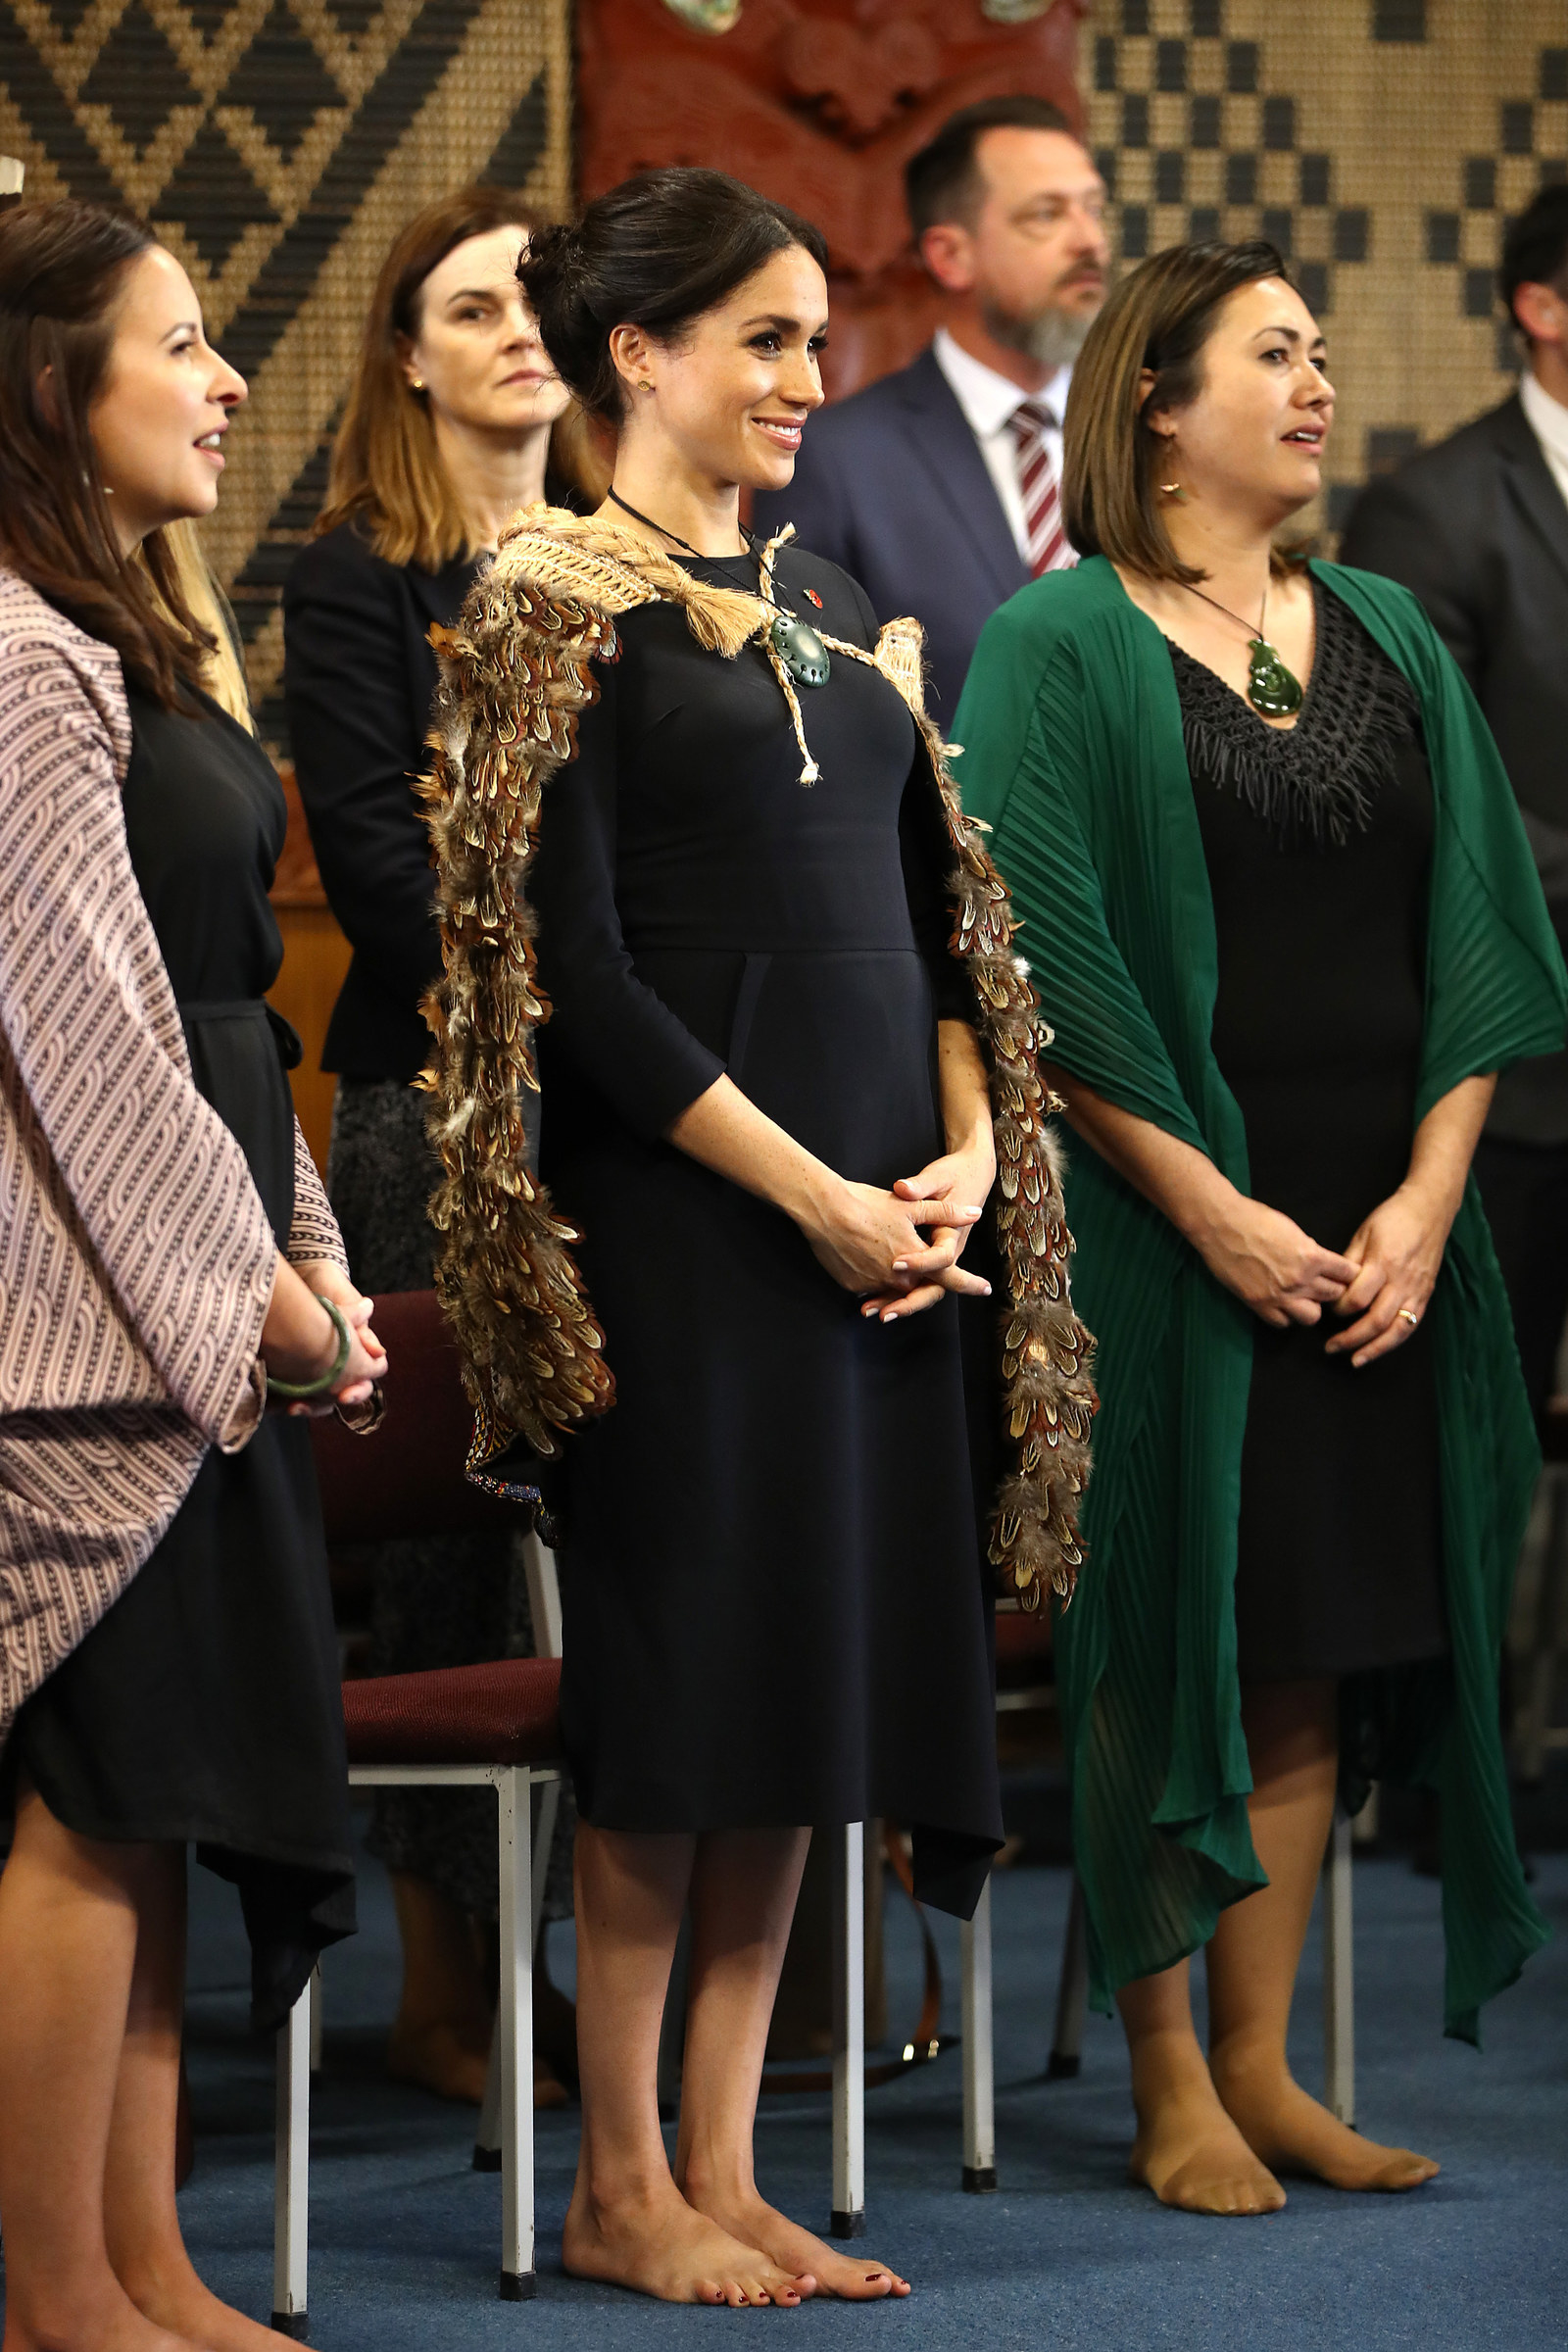 """We see the duchess as representing strong kaupapa (values) for women,"" Sturley said. ""She displays aroha (love), manaakitanga (nurturing and hospitality), mana (influence), dignity and strength, all signs of great leadership."""